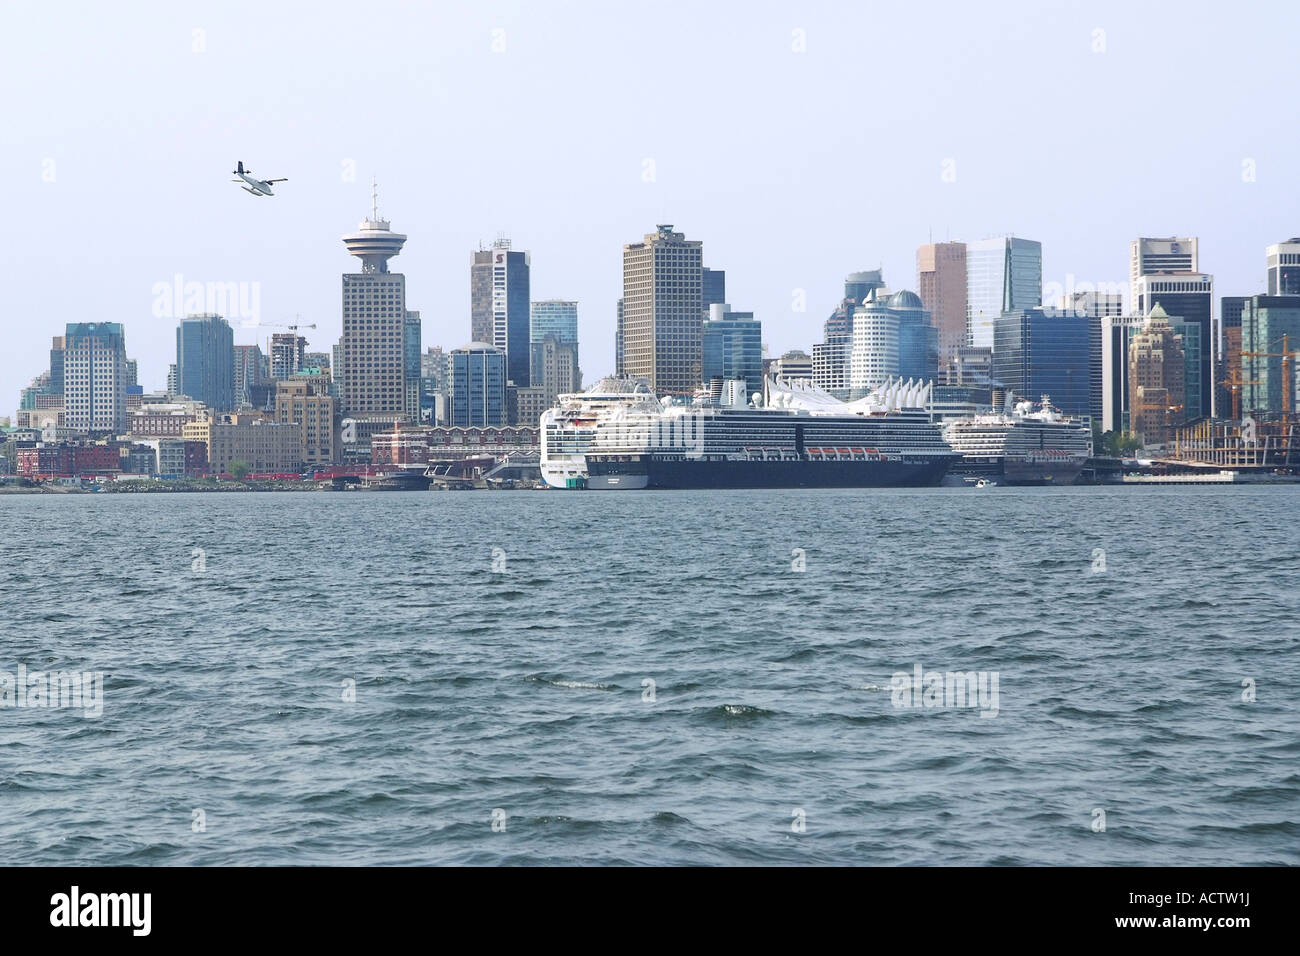 VIEW OF CANADA PLACE PIERS DOWNTOWN VANCOUVER FROM SEA SIDE - Cruise ship jumper